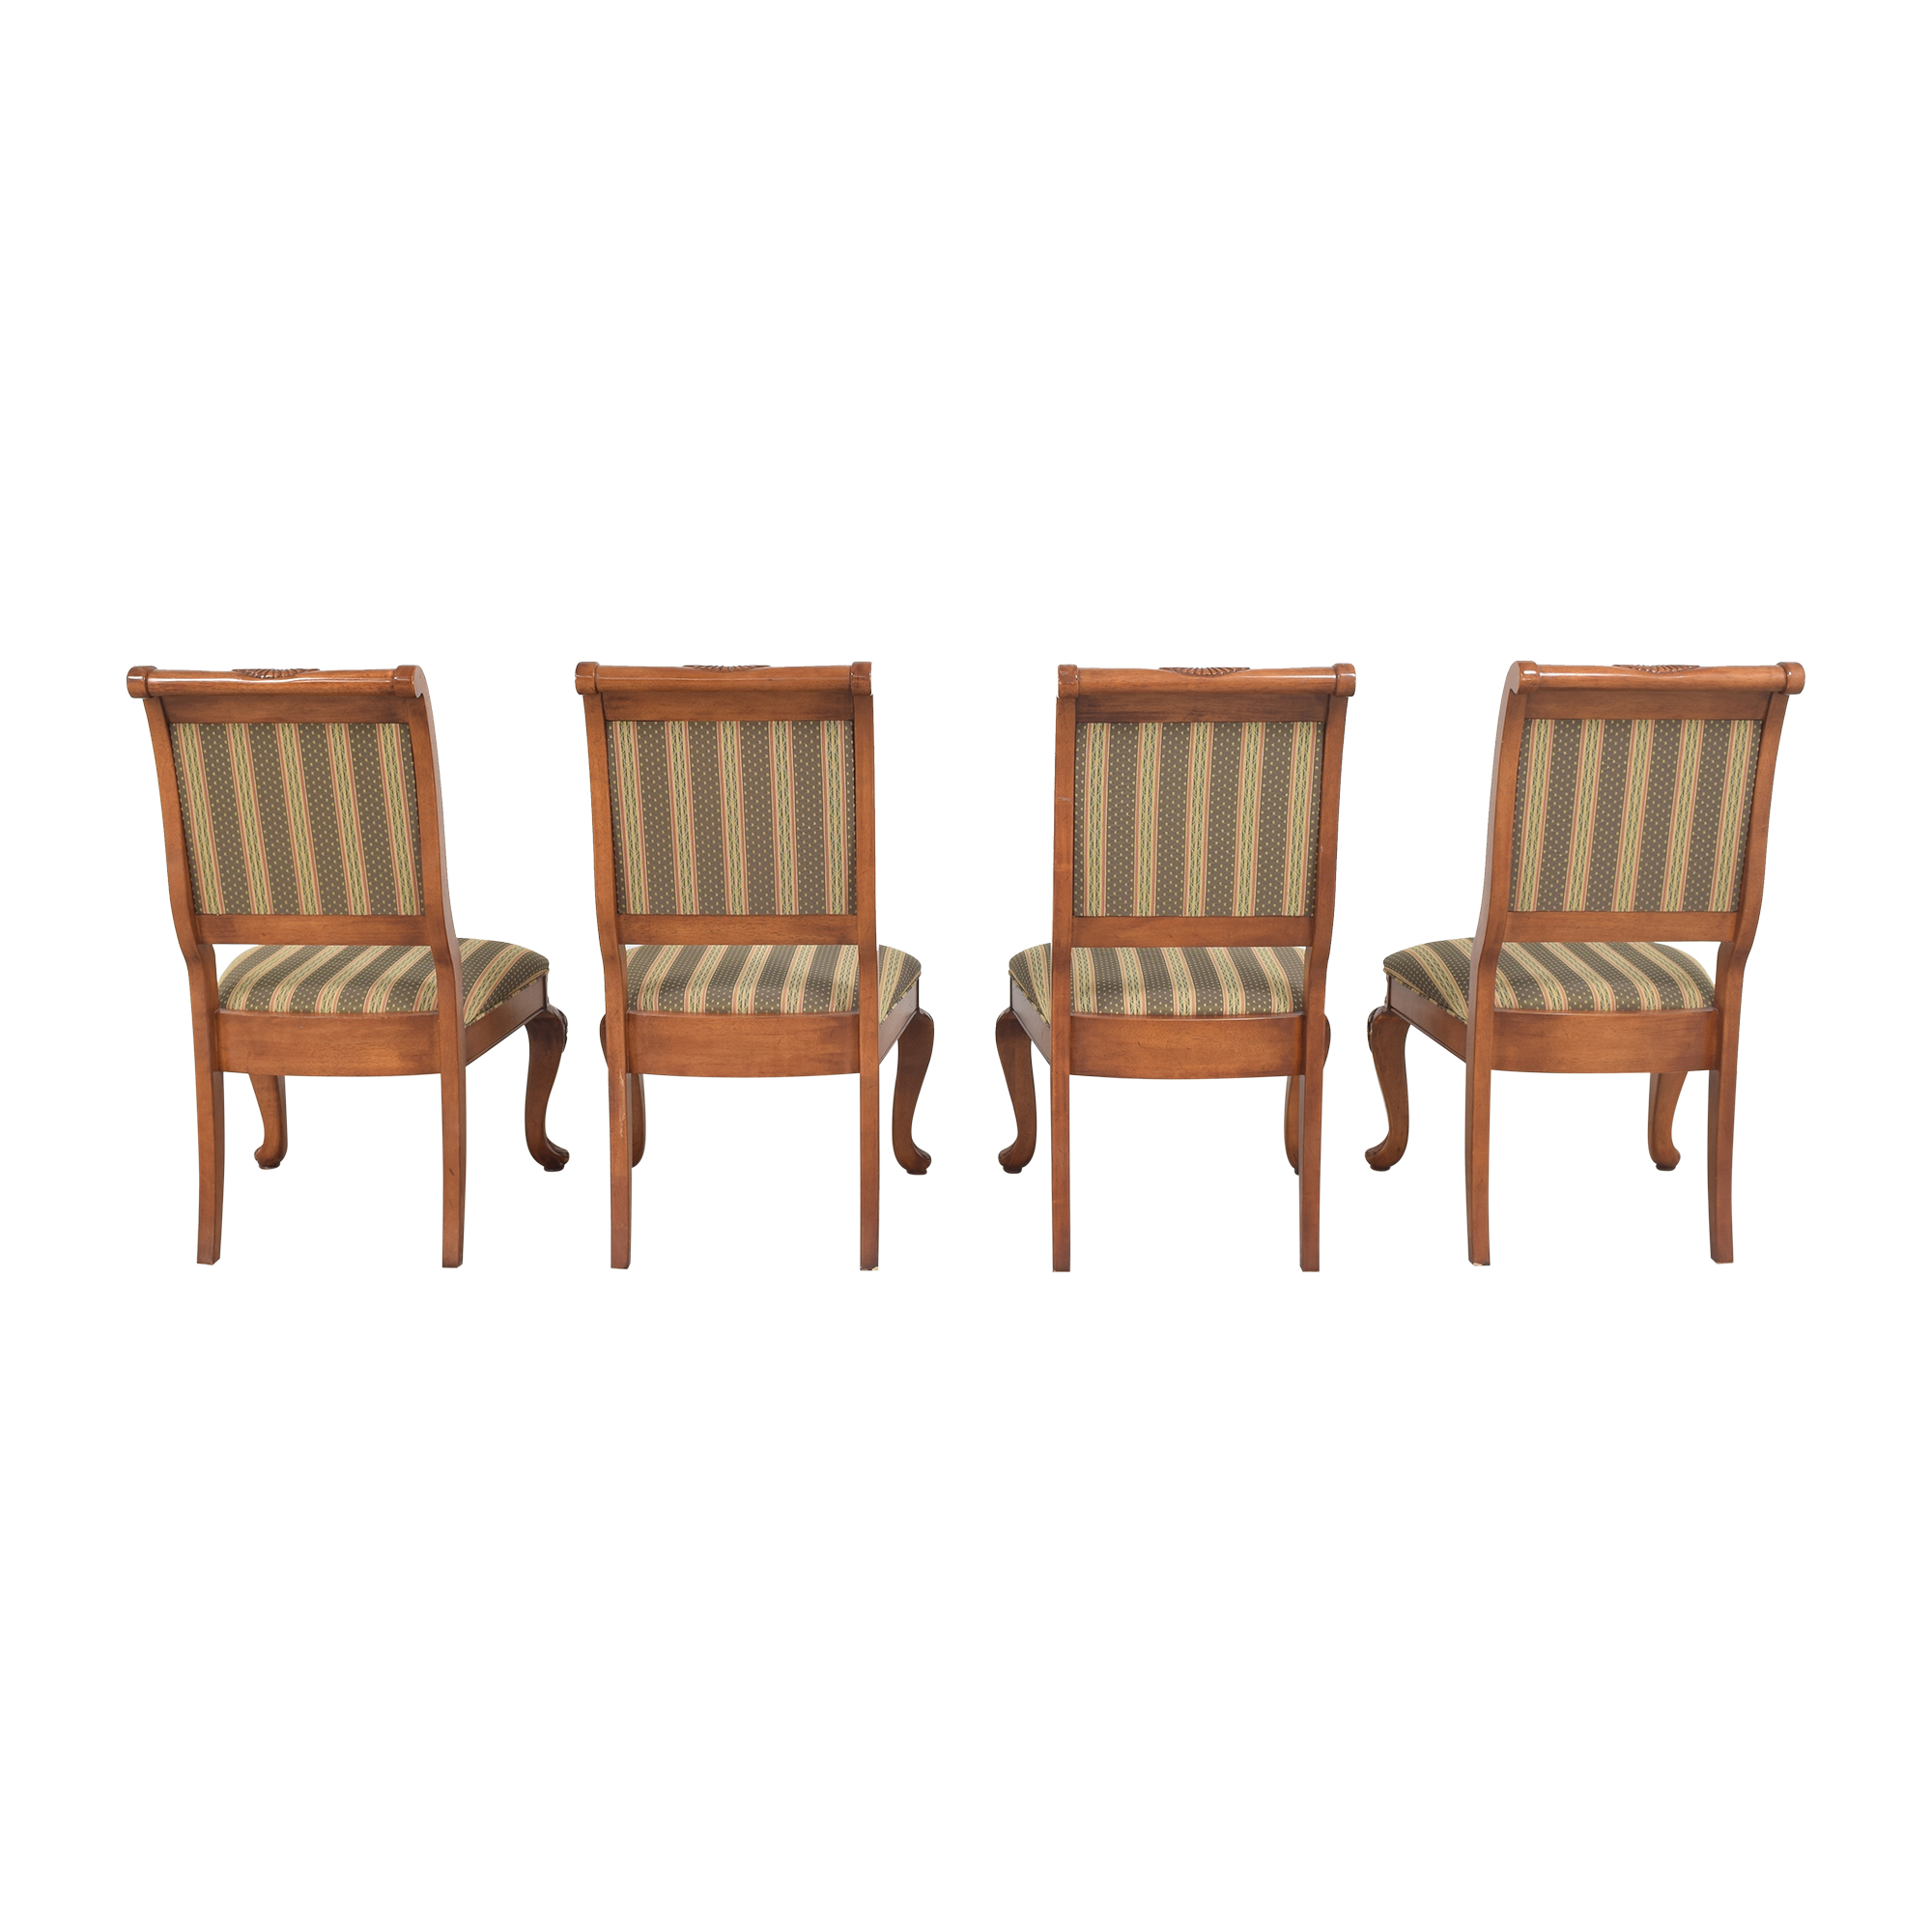 Hyundai Furniture Hyundai Stripe Dining Chairs on sale